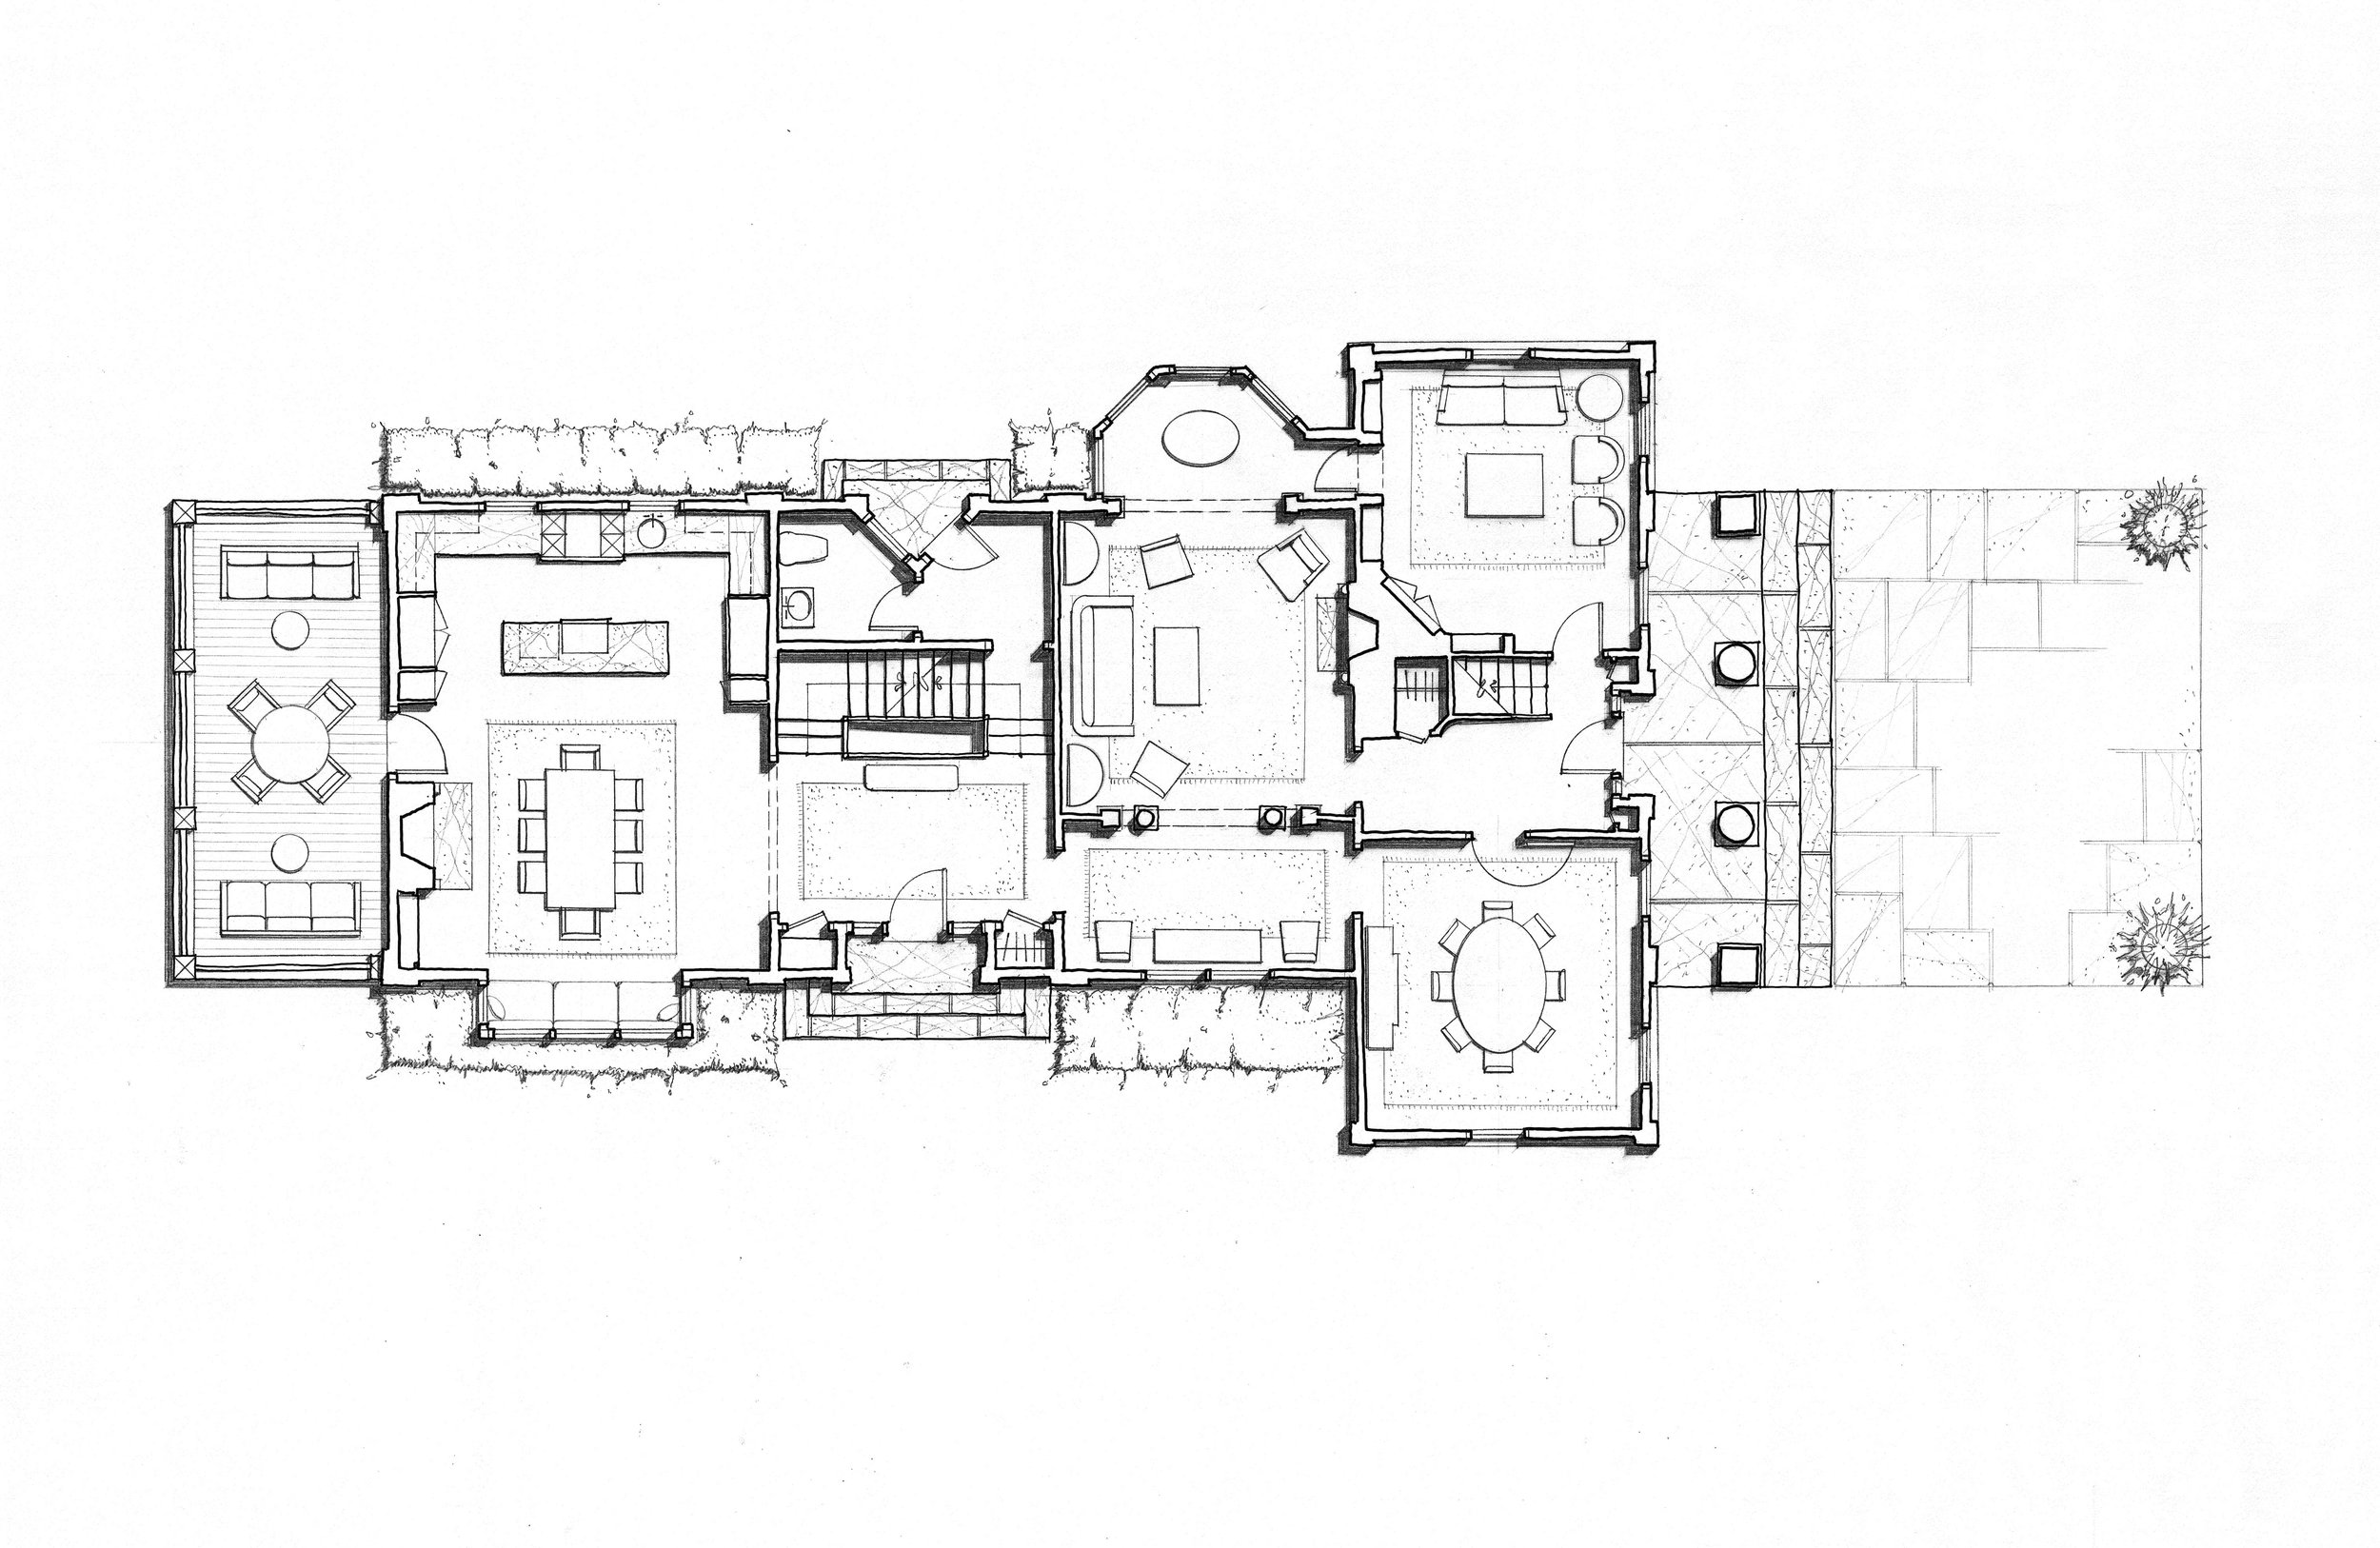 The plan of this expanded Greek Revival house shows the relationship between the original house and the new wing to the left.